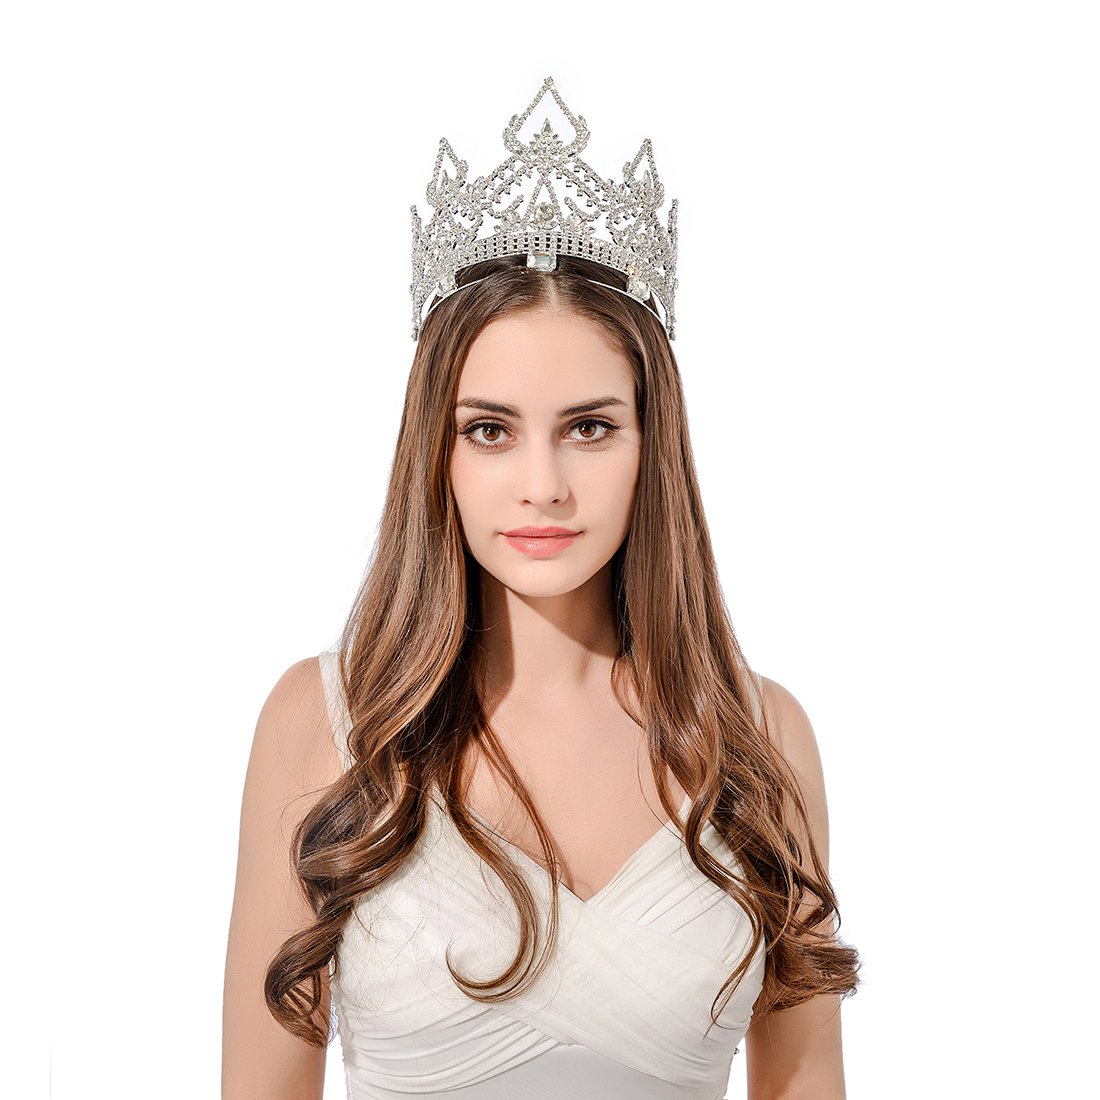 DcZeRong Women Crowns Queen Crowns For Women Prom Pageant Party Rhinestone Crystal Full Crowns by DcZeRong (Image #2)